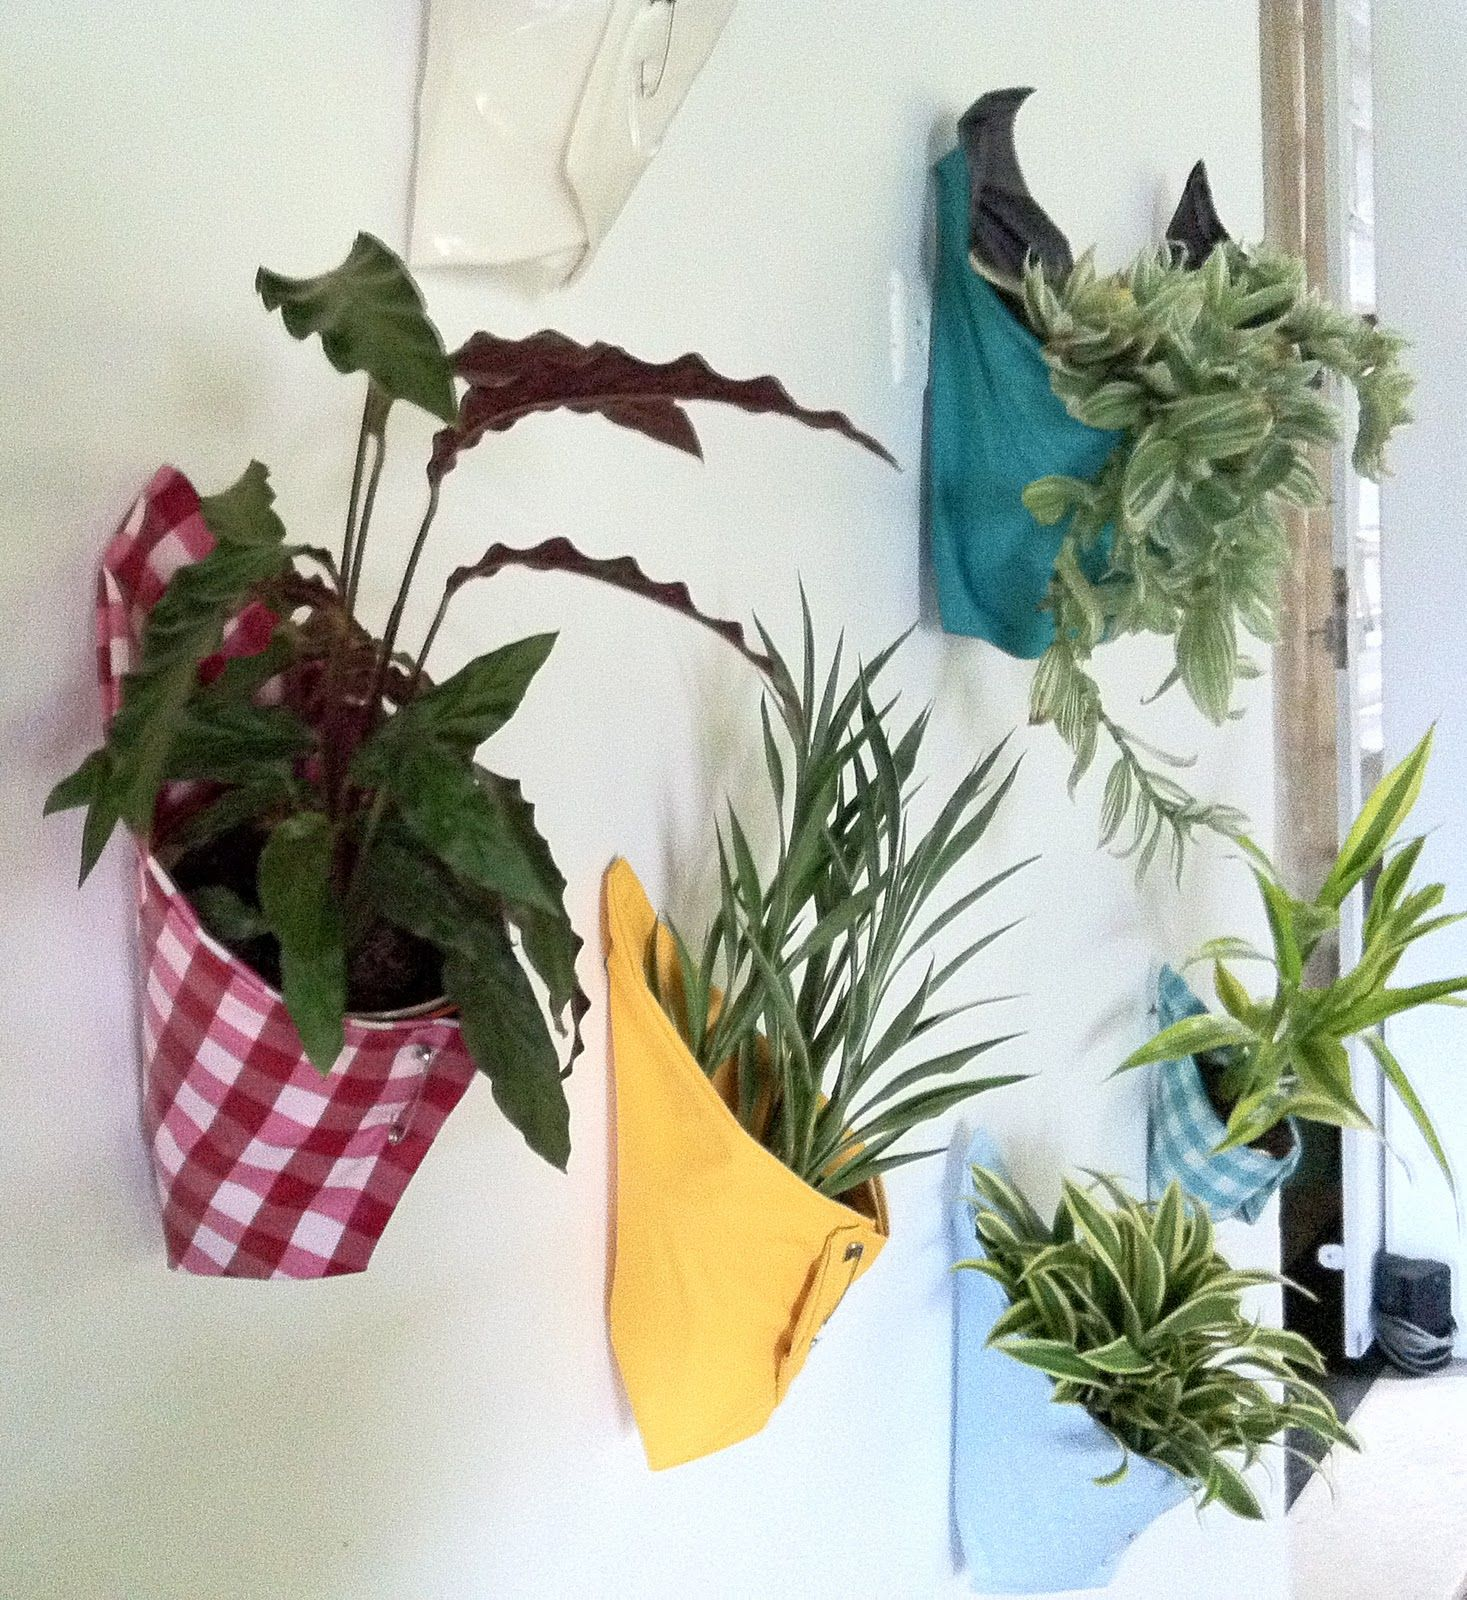 Pin by carmen torres on at home pinterest plants diy vertical